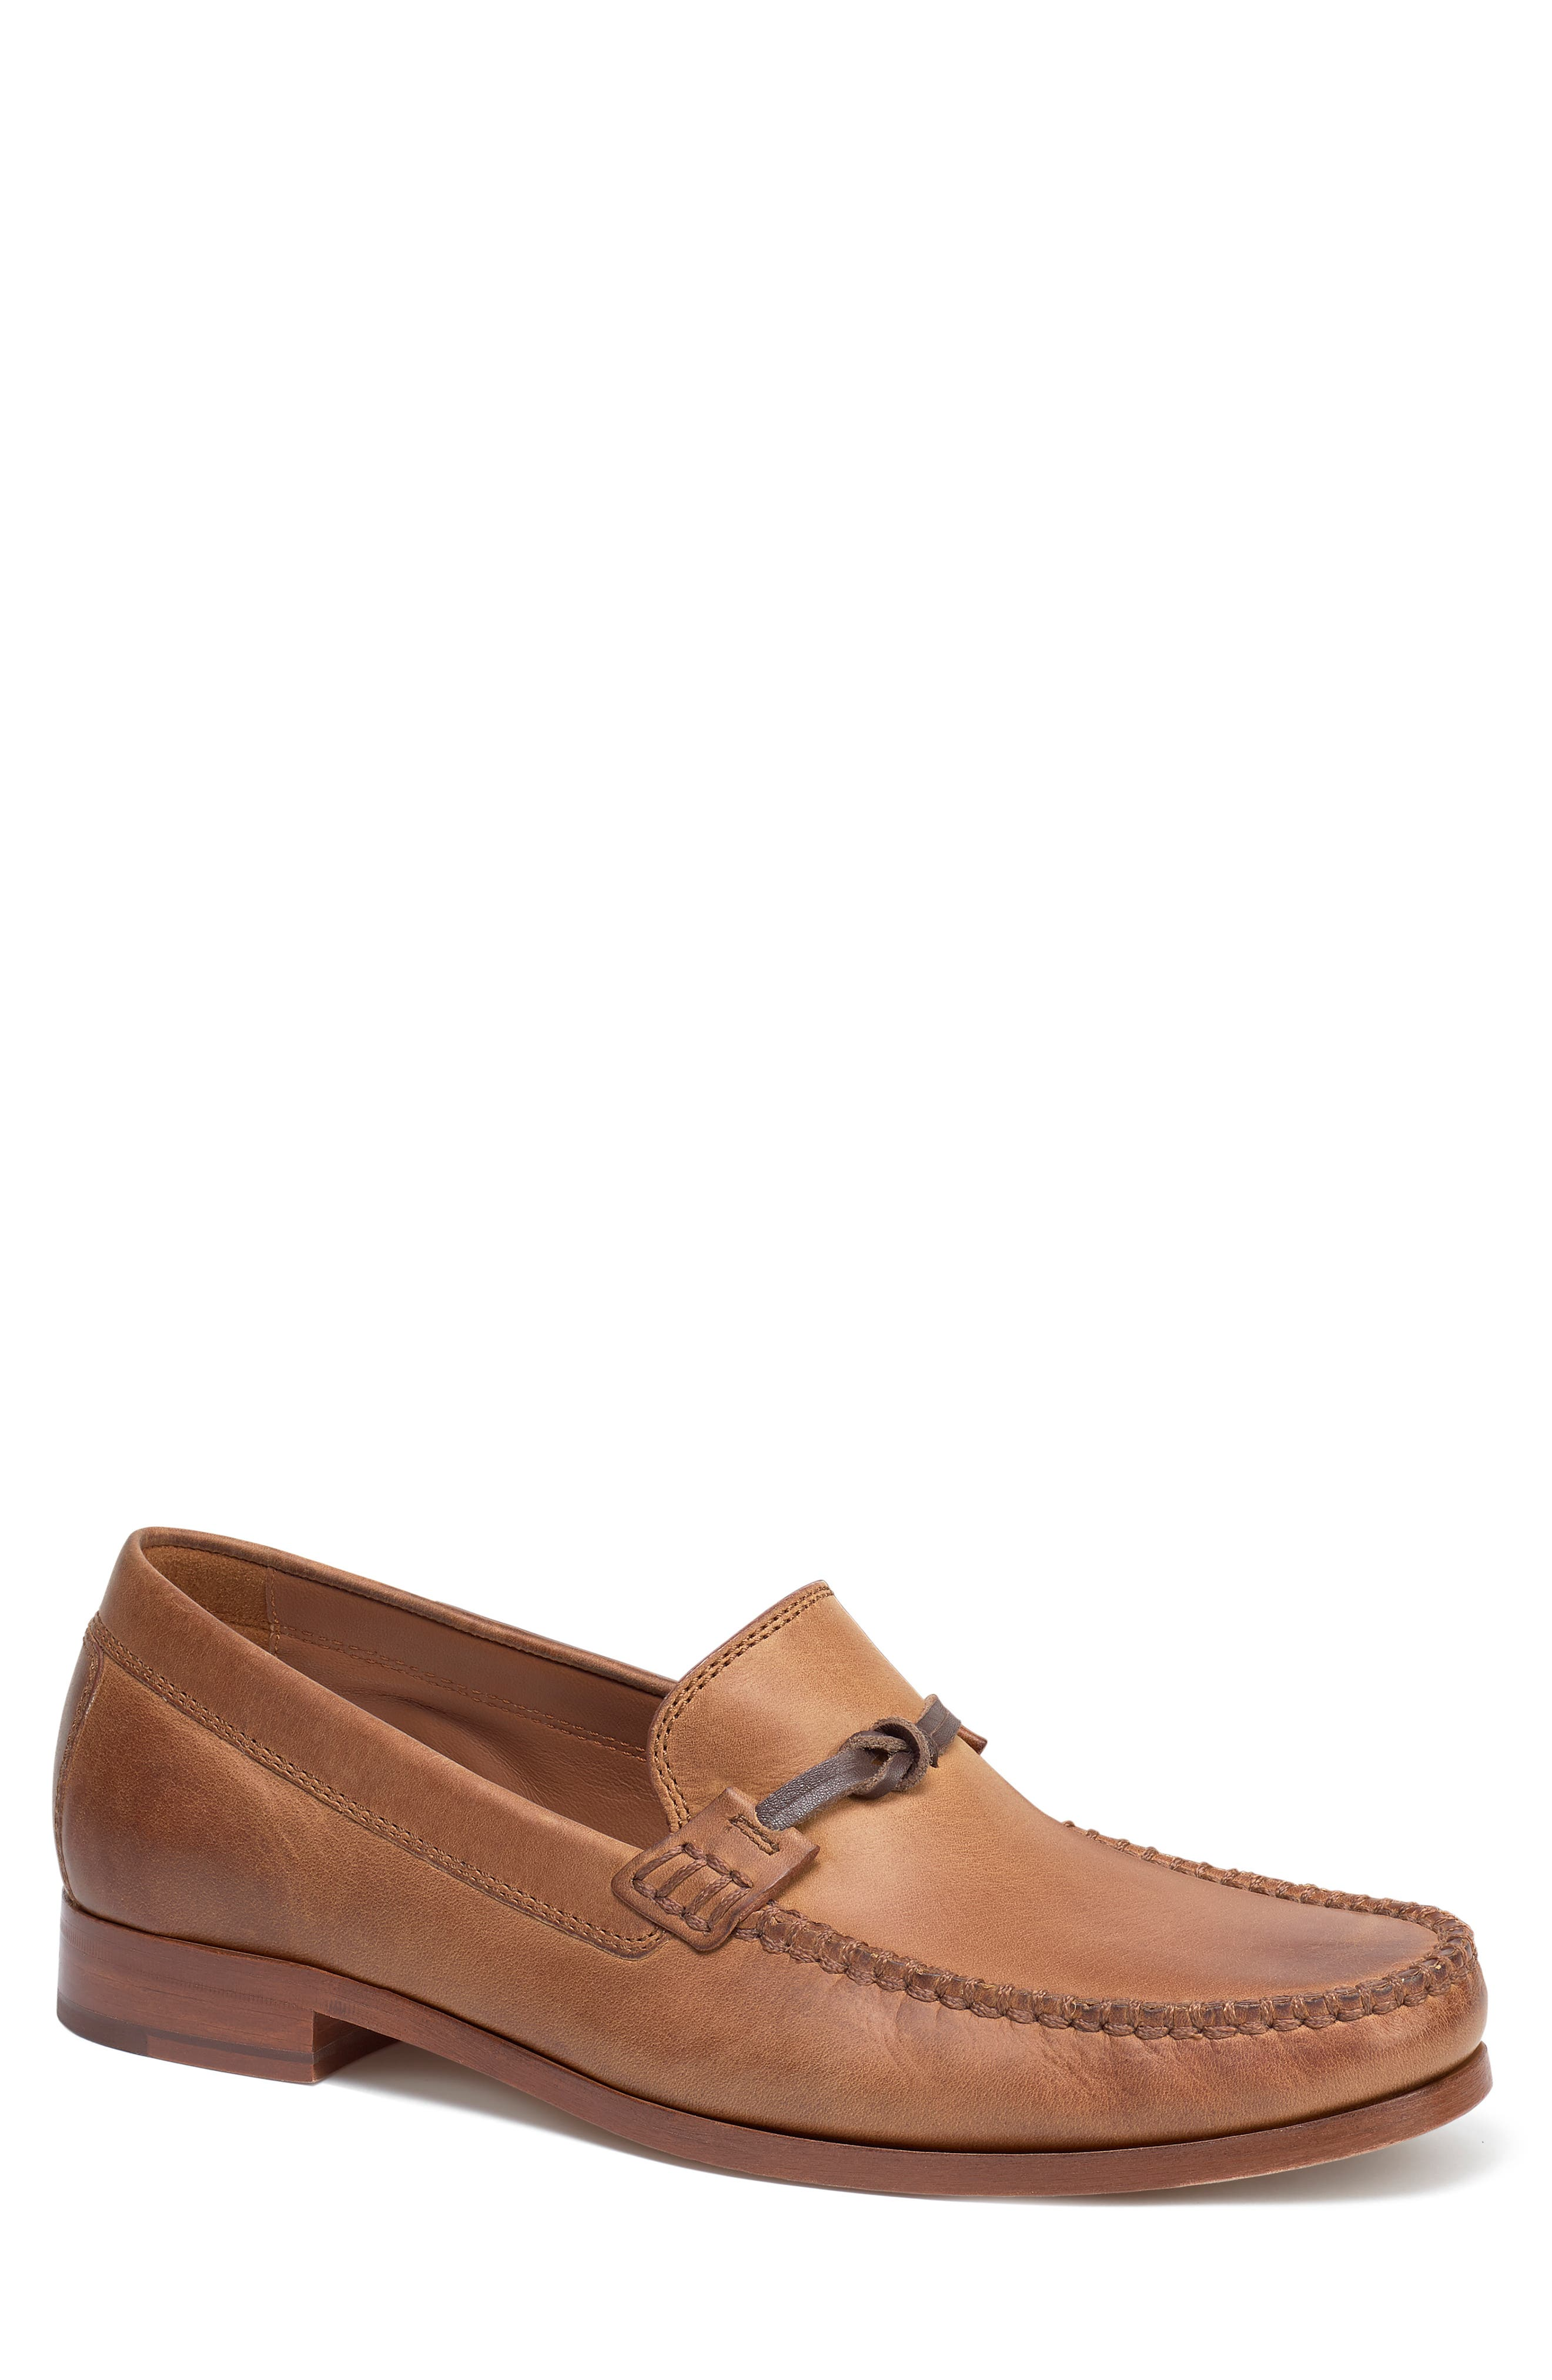 'Sawyer' Loafer,                         Main,                         color, TAN LEATHER